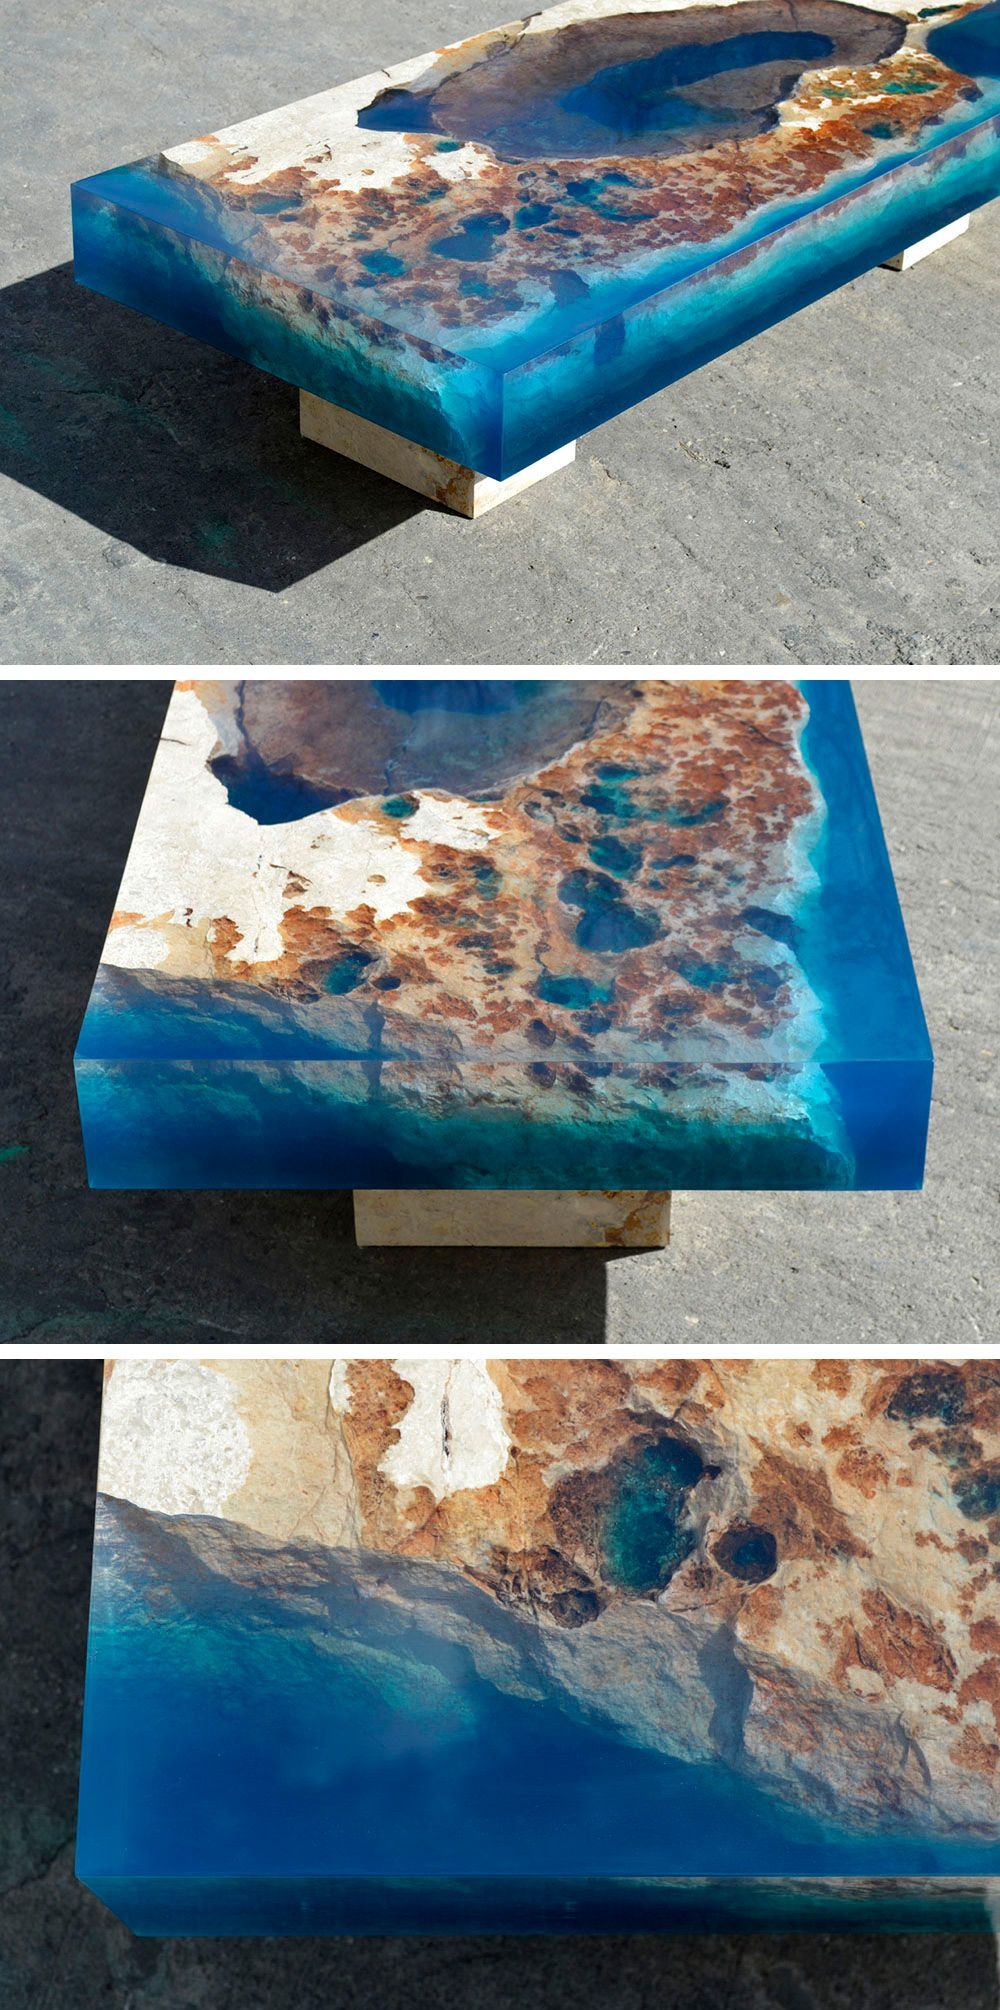 New Cut Stone Tables Encased In Resin Mimic An Ocean Reef - Incredible layered glass table mimics oceans depths